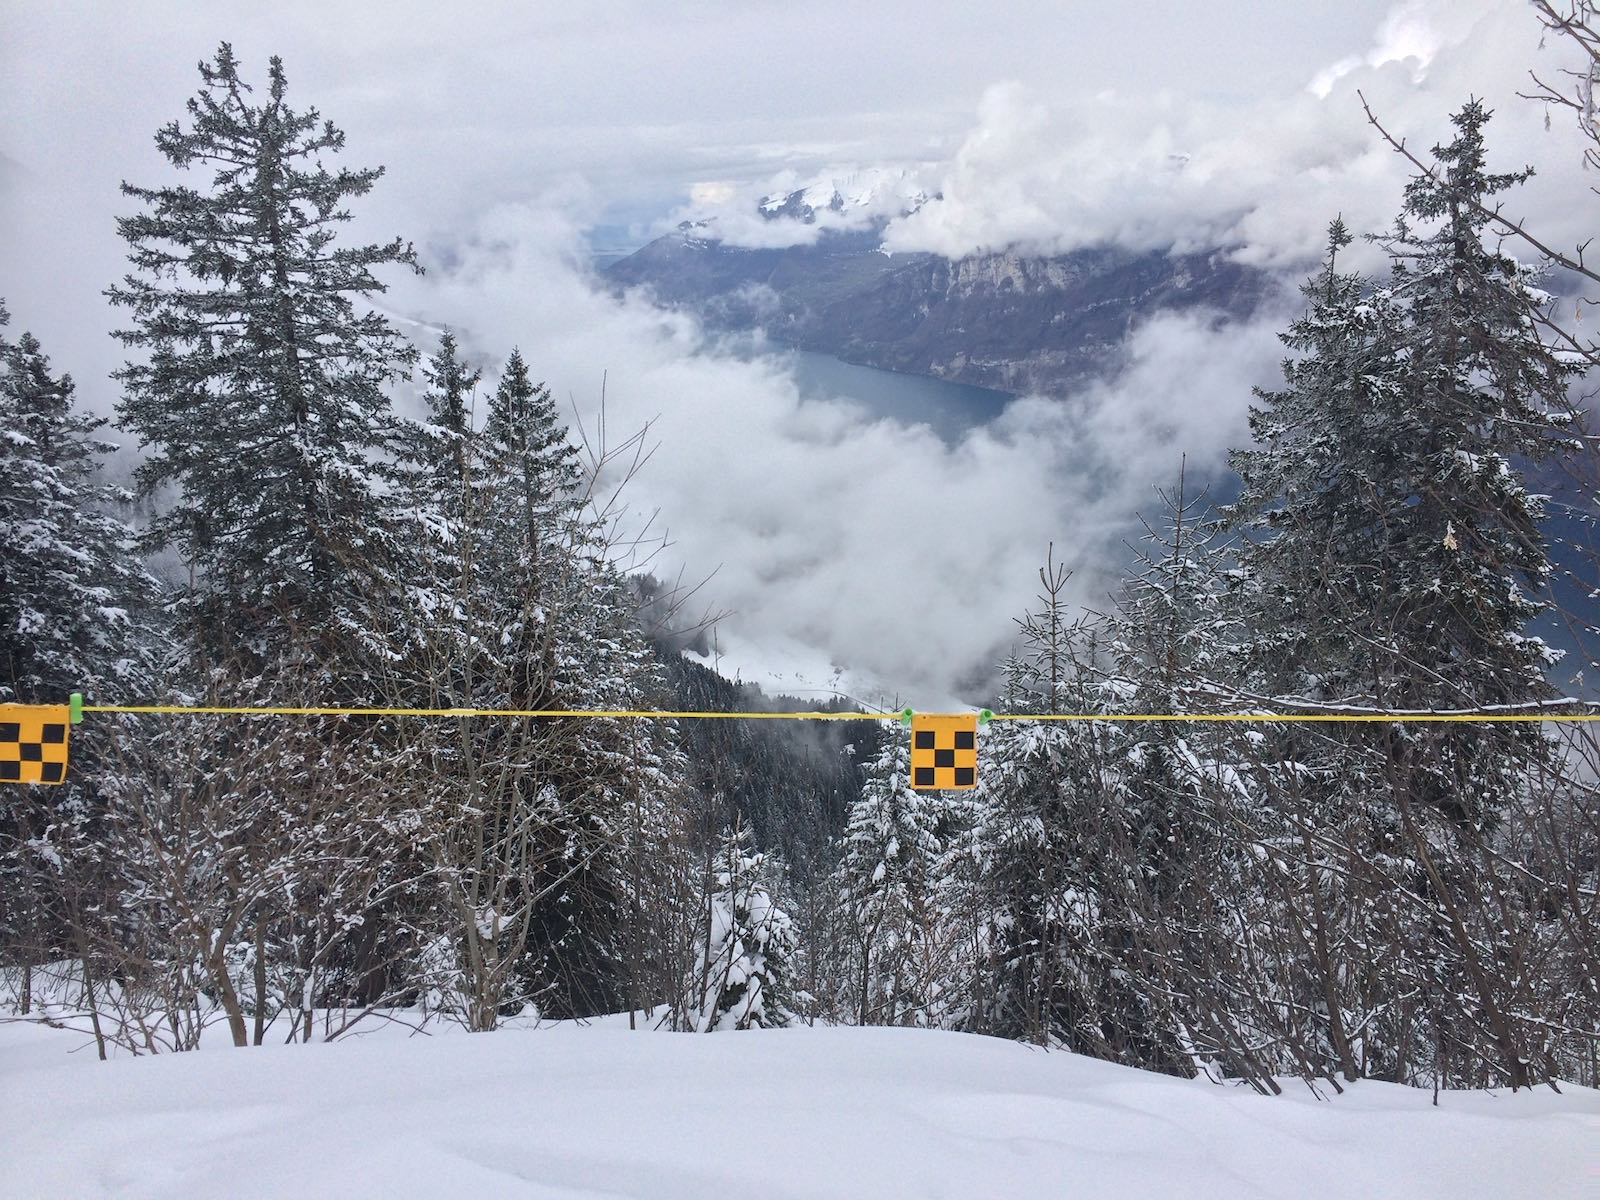 Swiss alps, lookgin down on the clouds. Photo, author's own